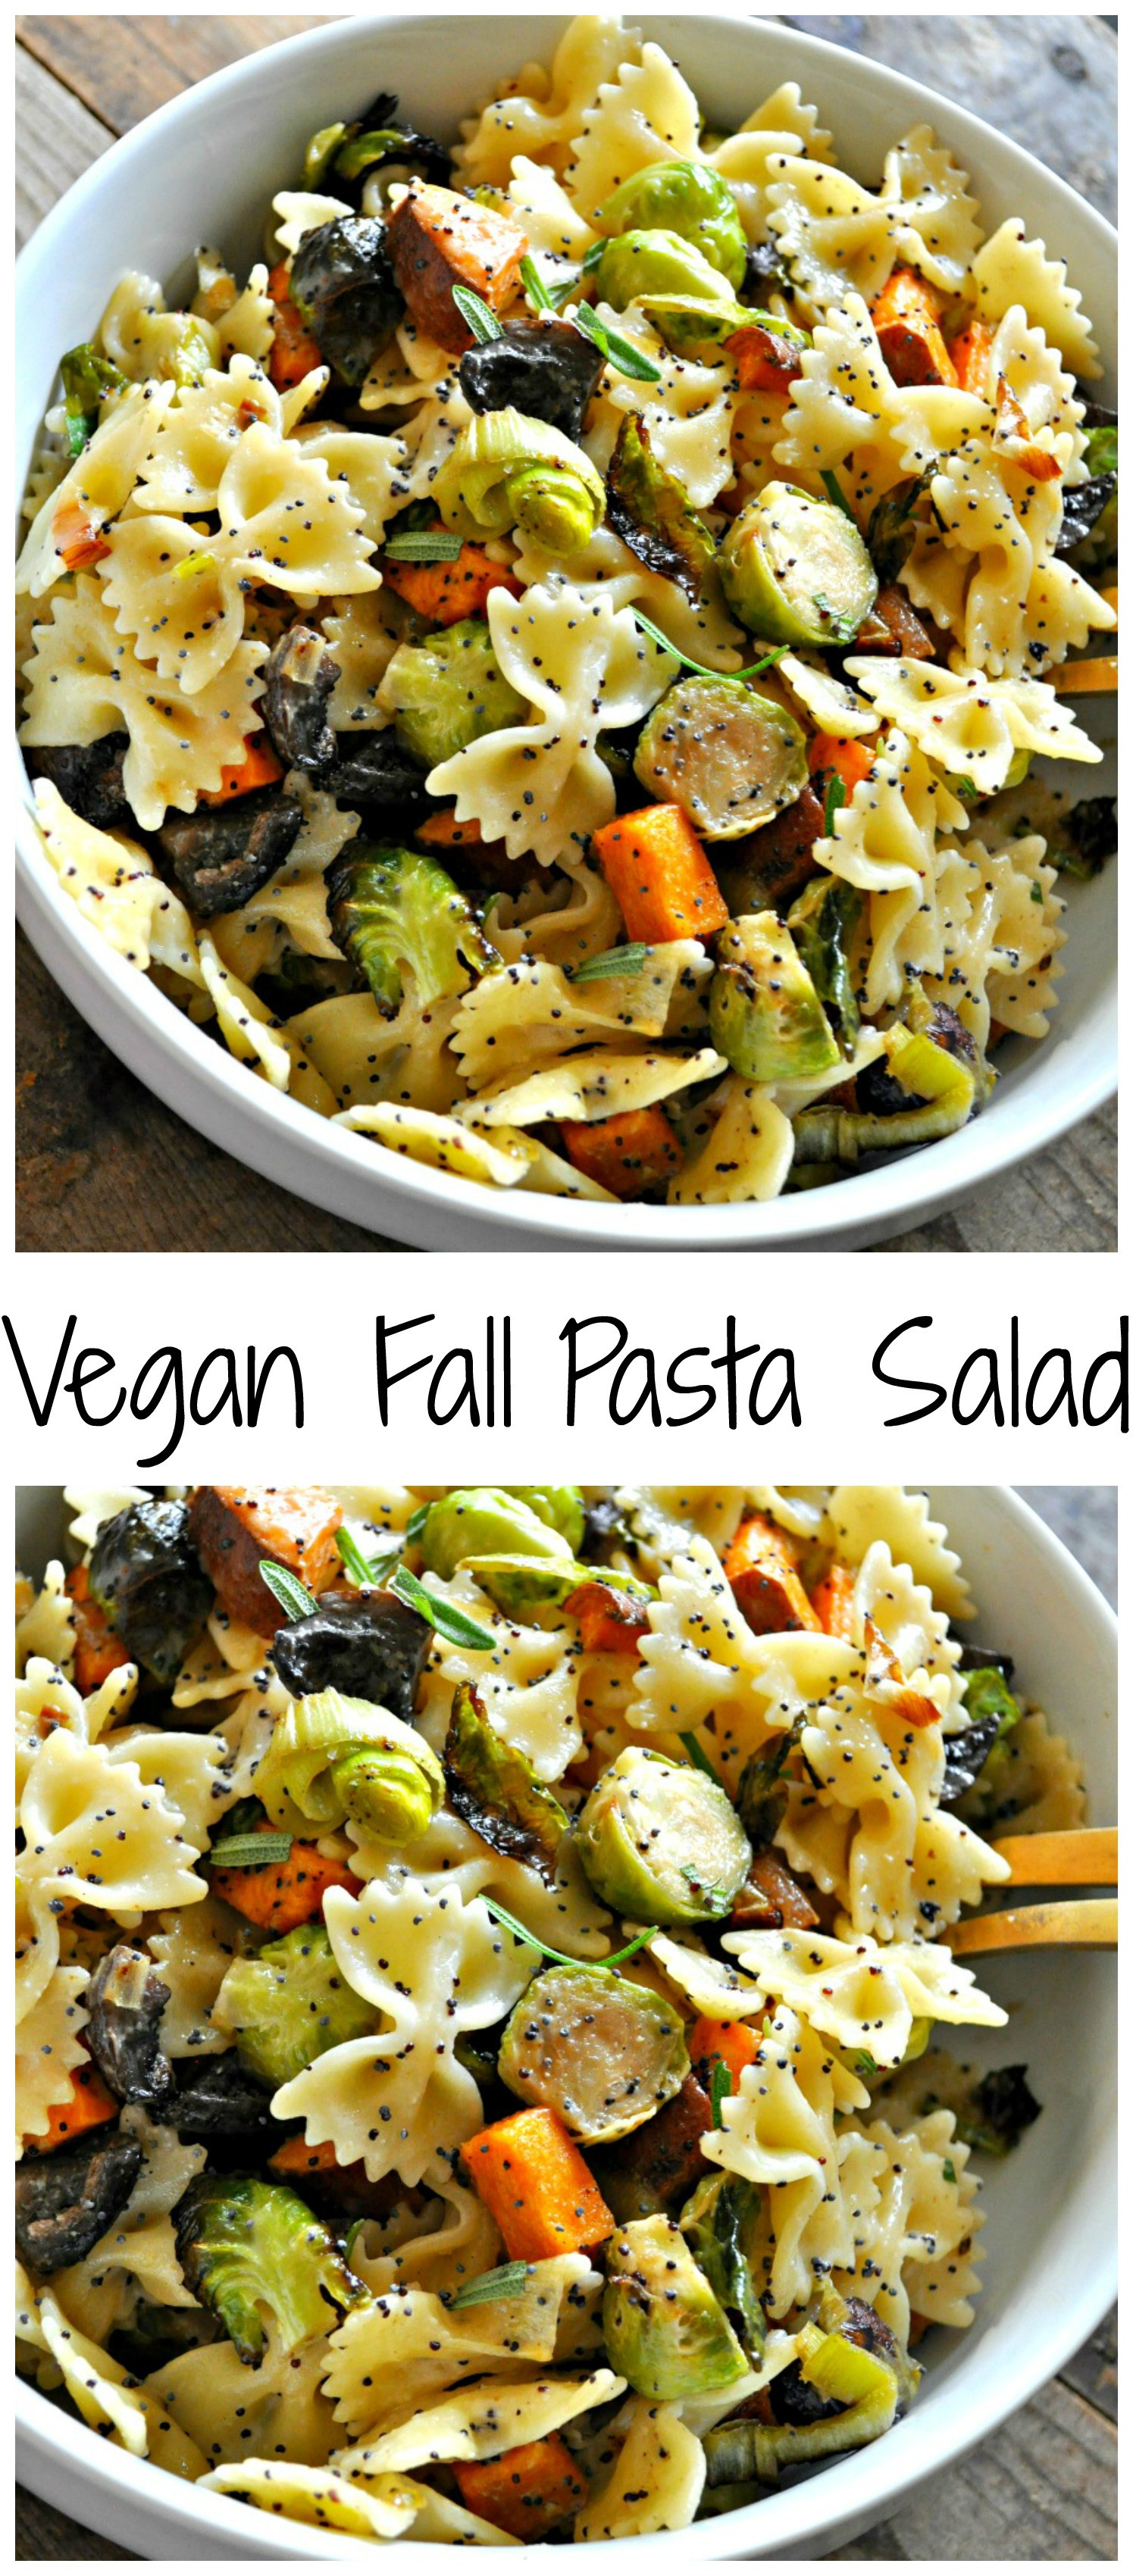 Fall Pasta Salad  Vegan Fall Pasta Salad Rabbit and Wolves